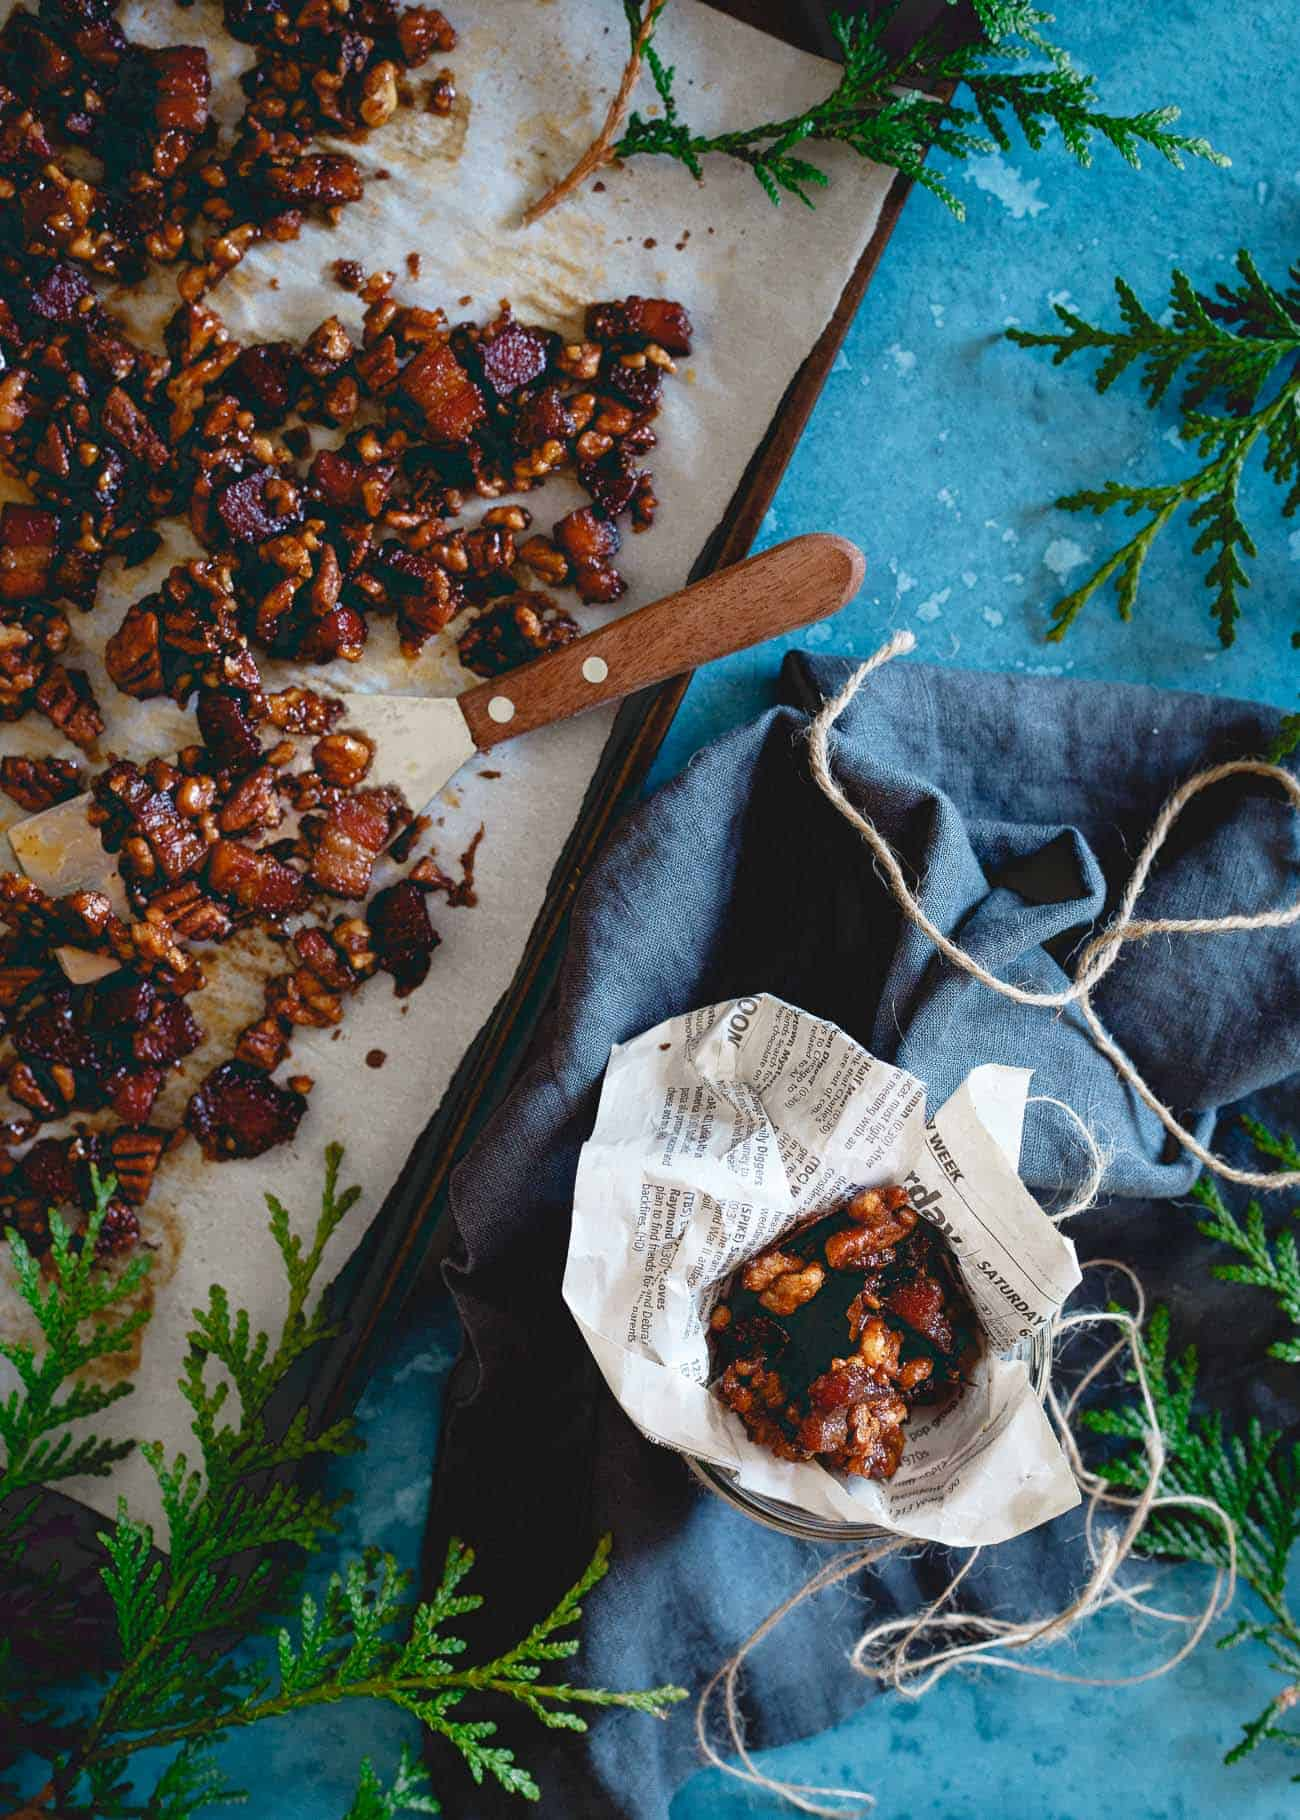 Jar up some of this candied bacon nut brittle for an easy DIY holiday gift anyone will love!